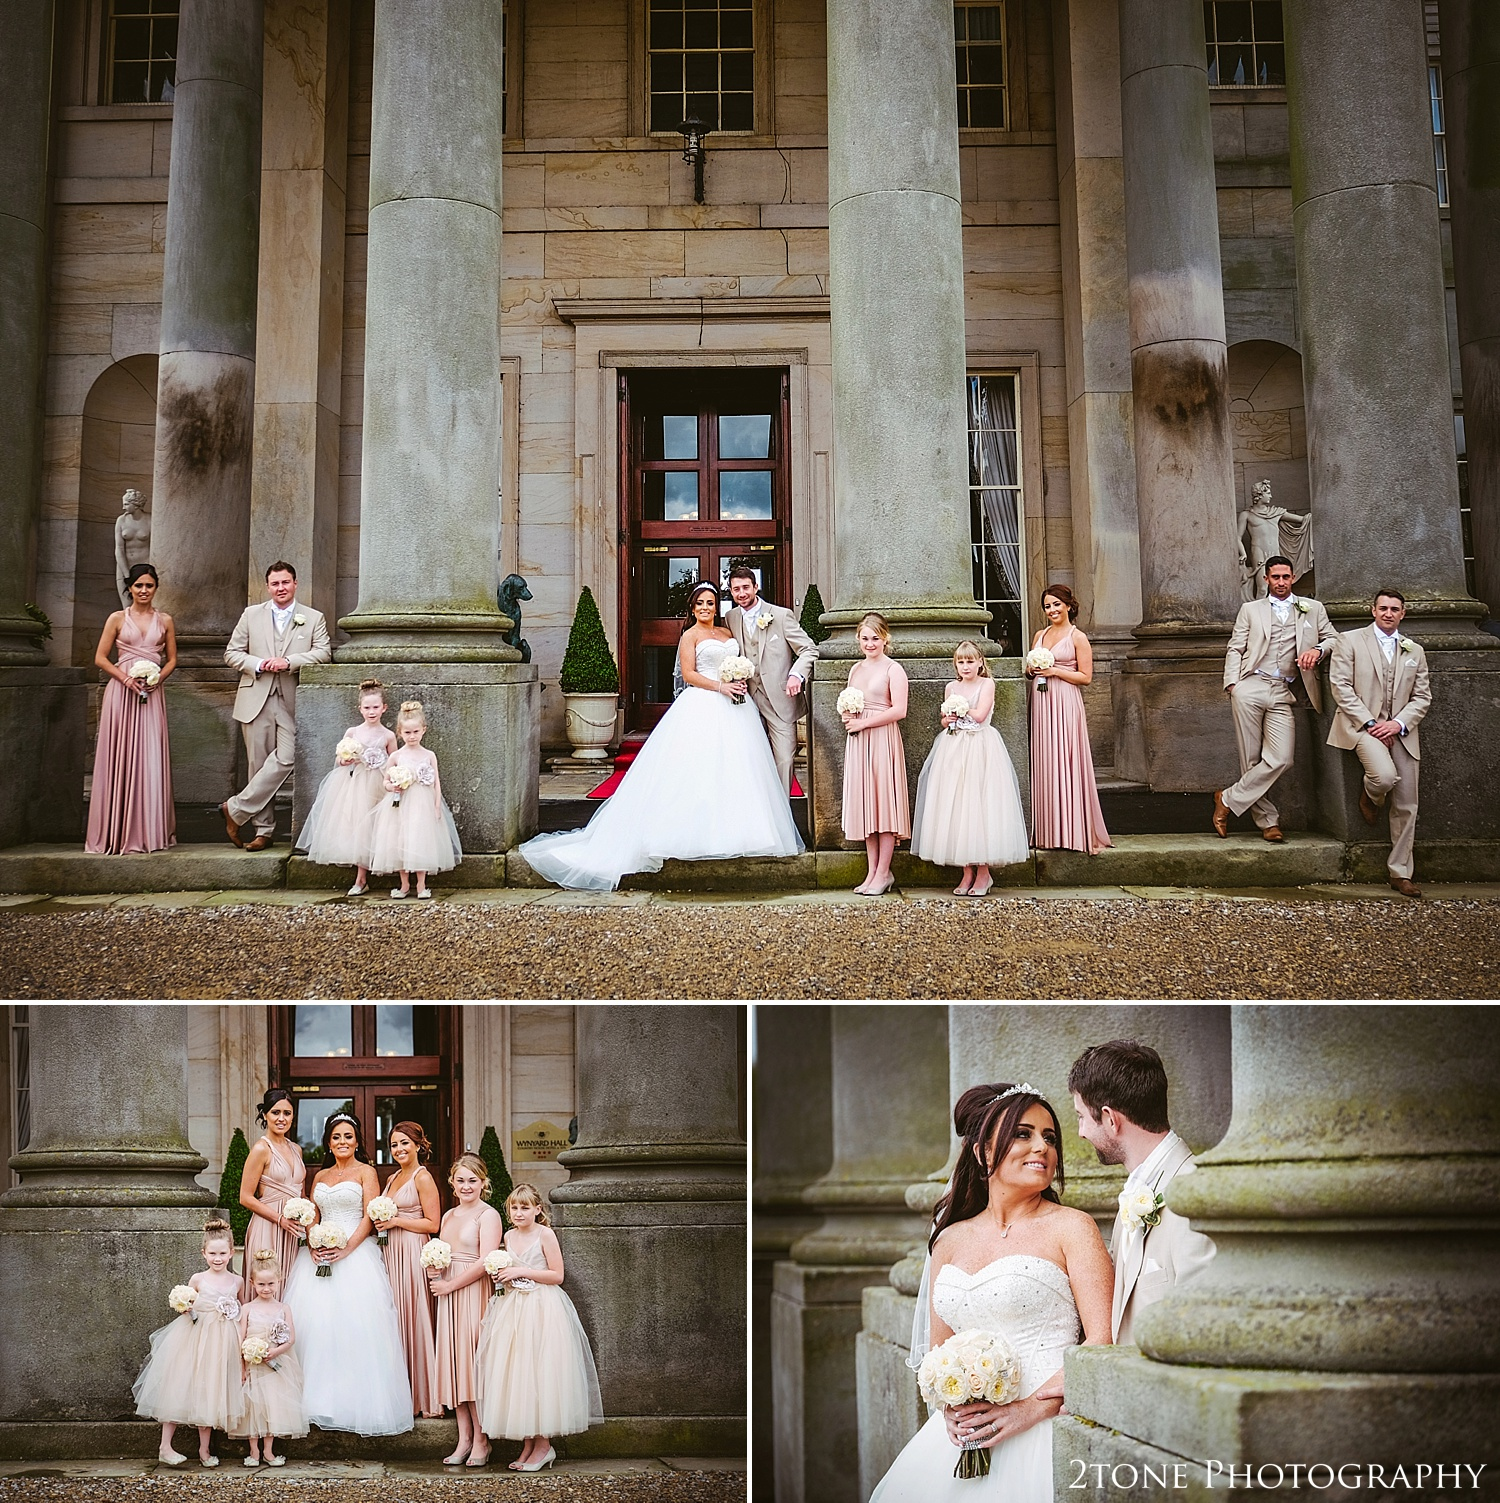 Bridal party photographs at Wynyard Hall by Newcastle and Durham based Wedding Photographer www.2tonephotography.co.uk